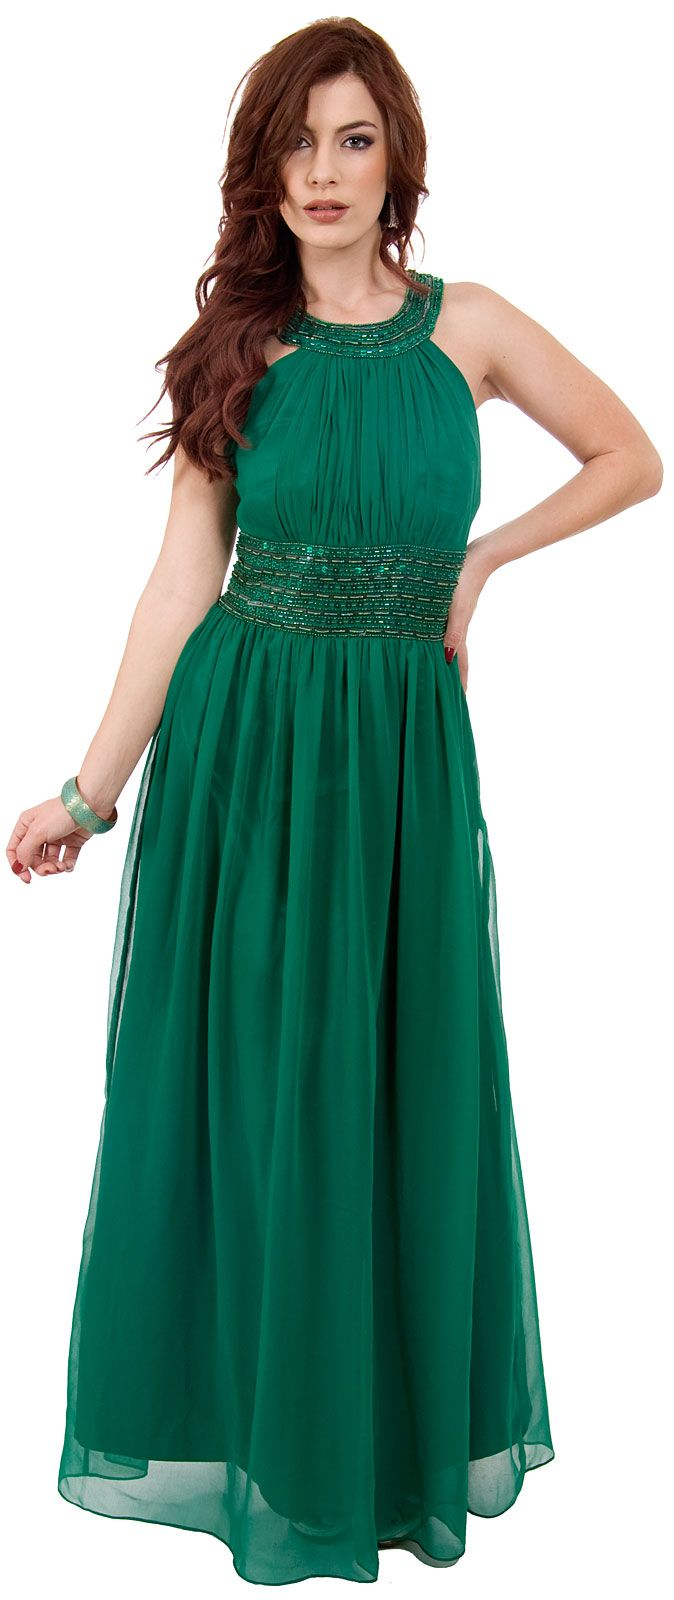 roman style dresses for sale - Google Search | beautiful gowns ...